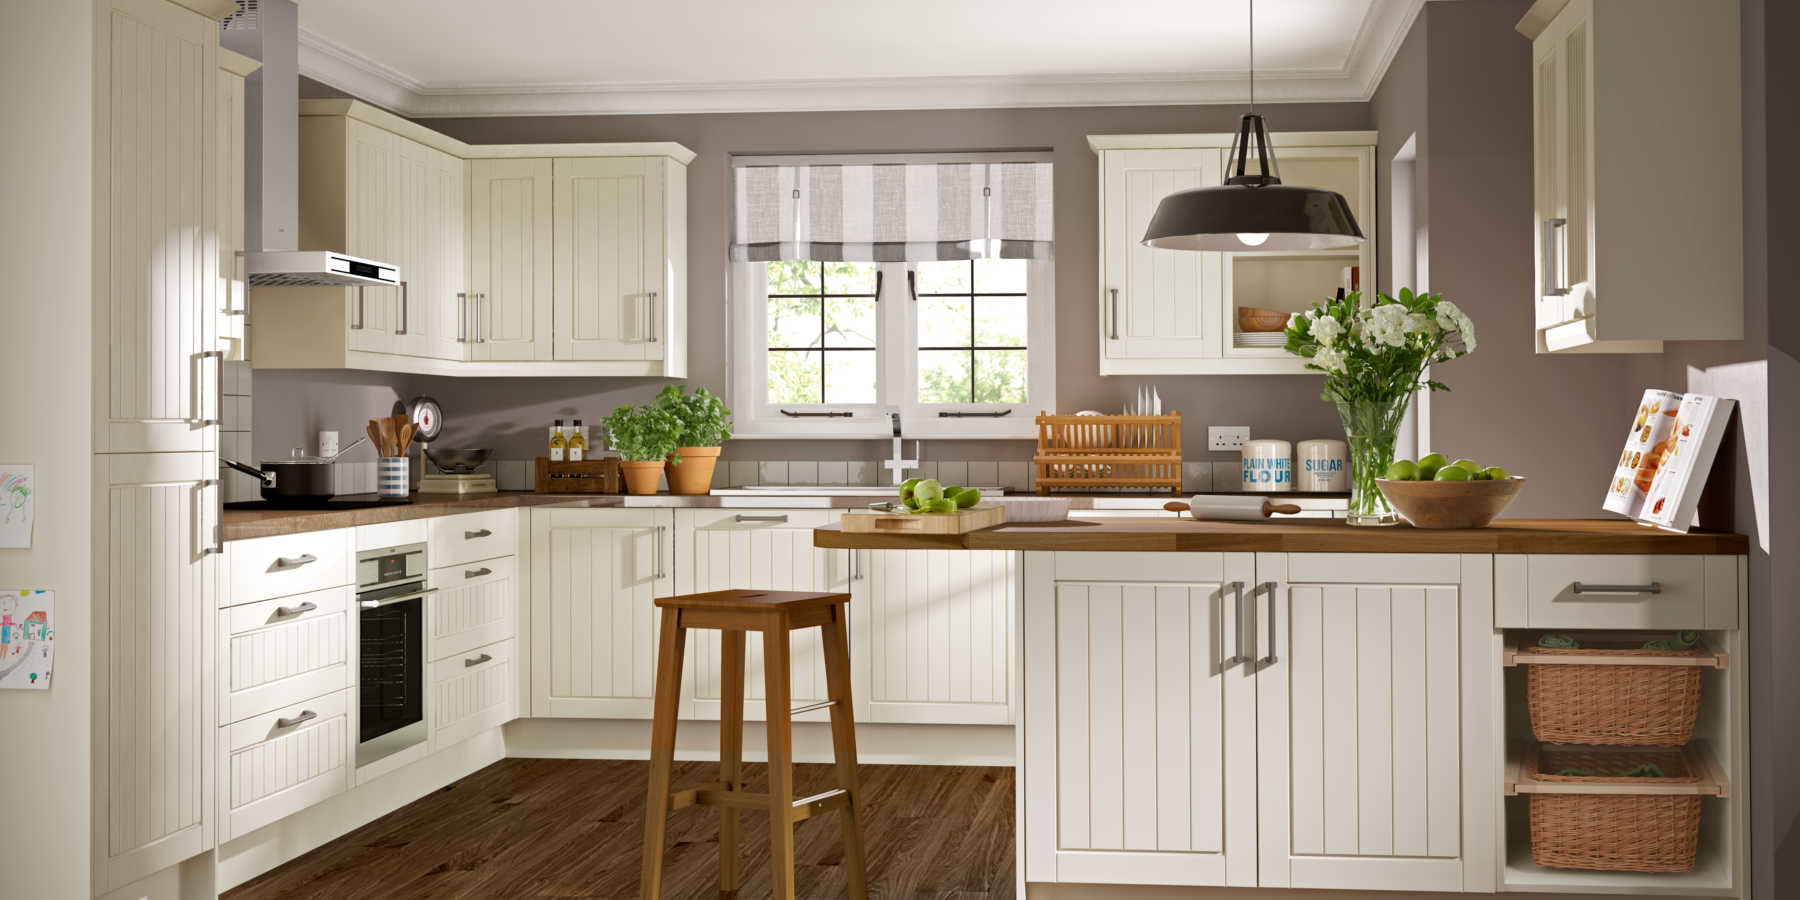 teifi-kitchens-timeless-newport